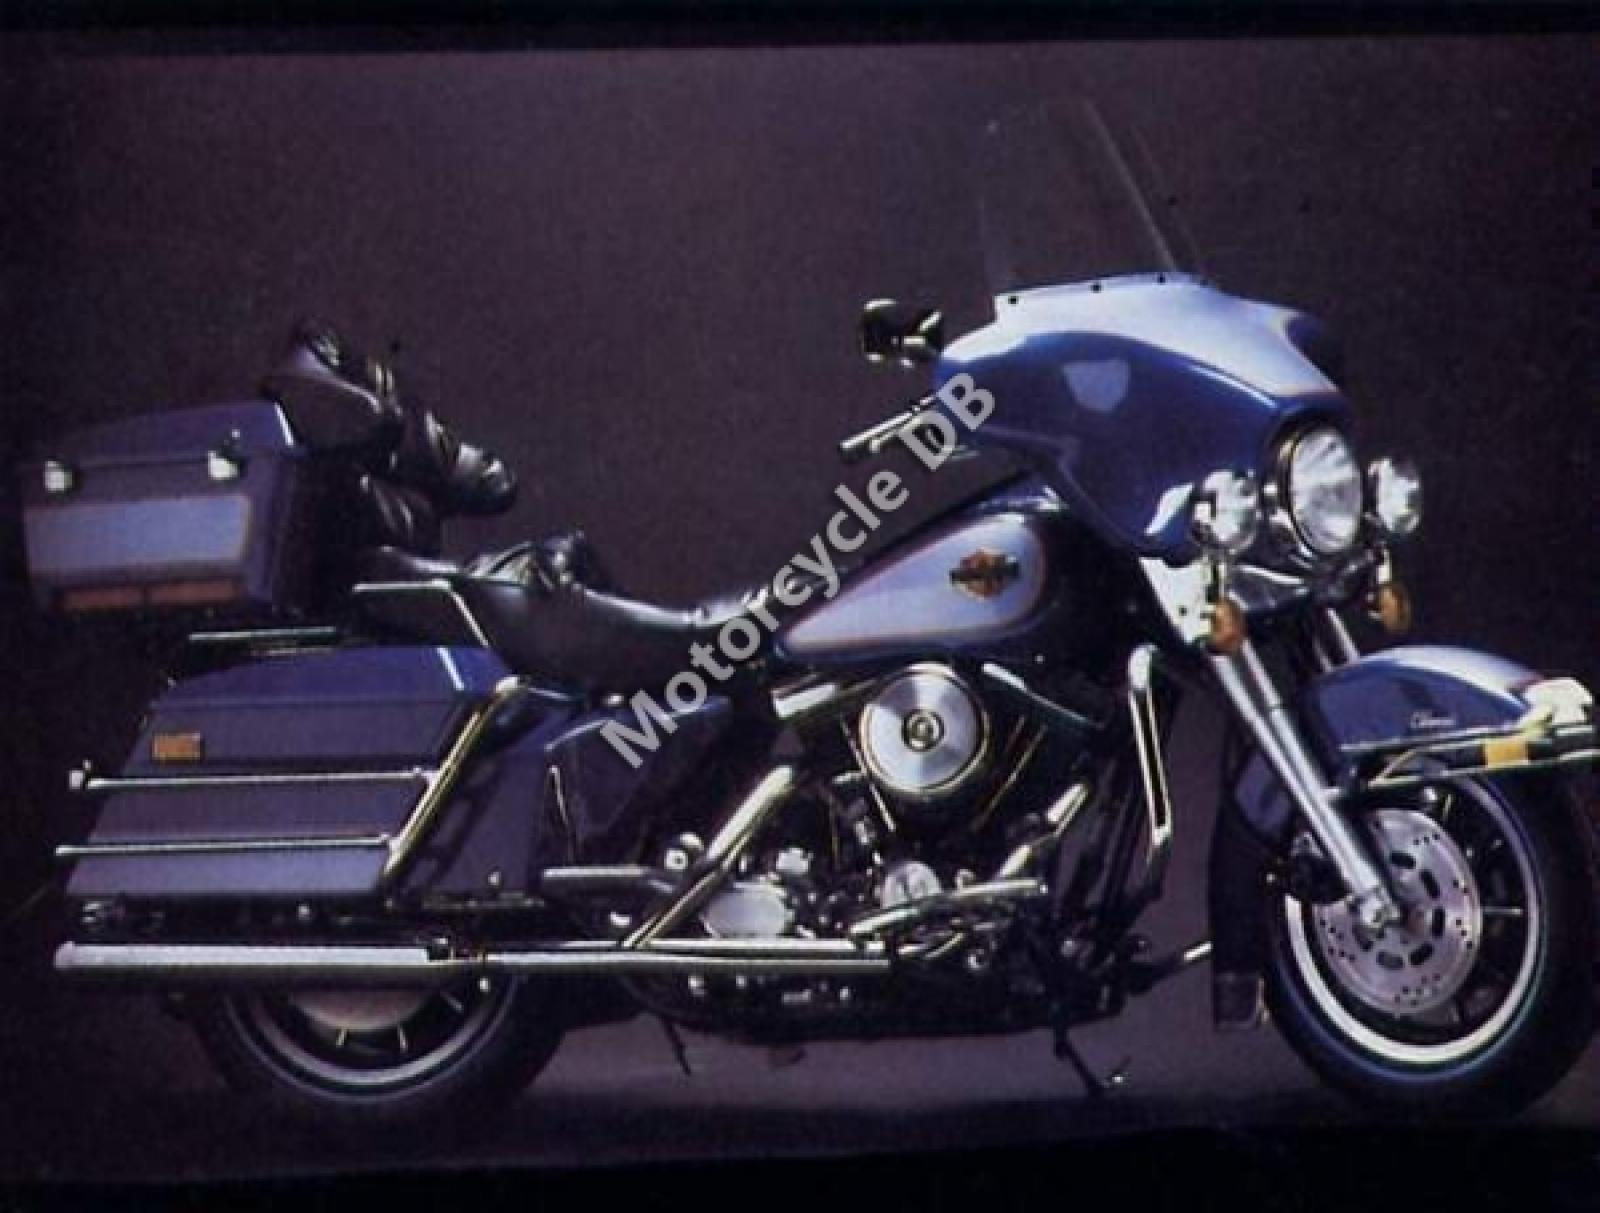 Wiring Diagram For 1980 Flh Harley Davidson | Wiring Diagram on harley-davidson touring wiring-diagram, harley-davidson dyna wiring-diagram, harley-davidson fxr wiring-diagram,